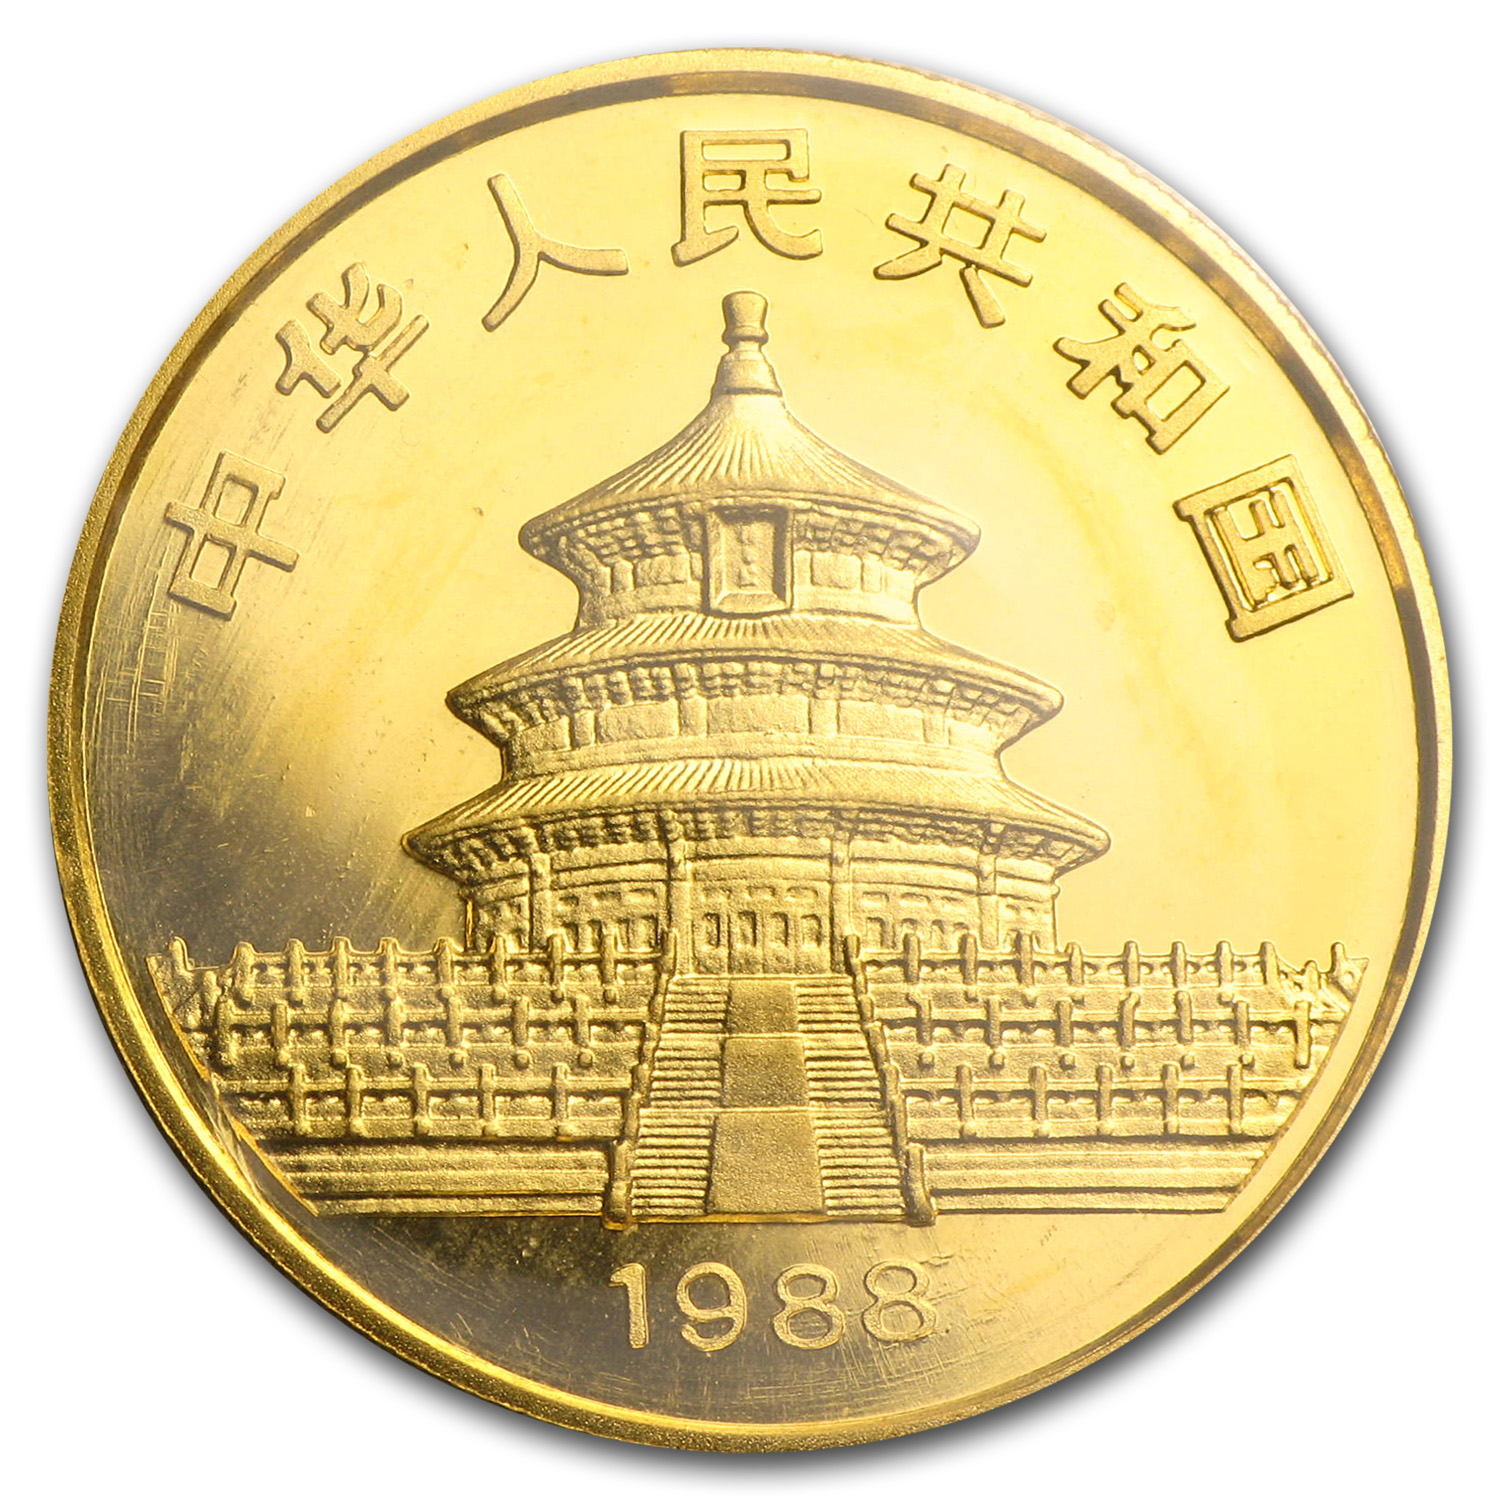 1988 China 1/2 oz Gold Panda BU (Sealed)